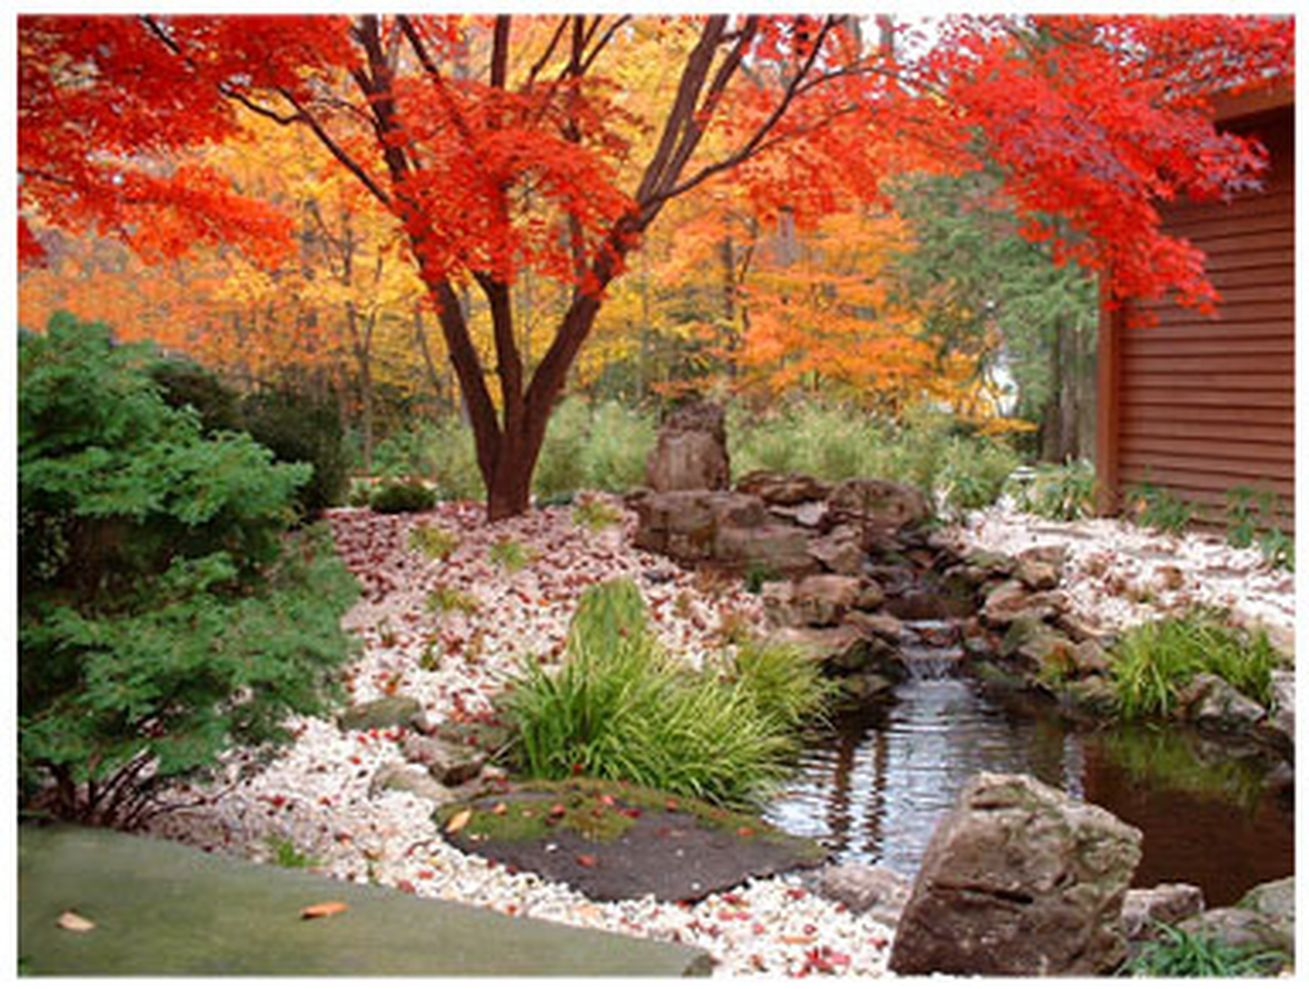 66 Inspiring Small Japanese Garden Design Ideas - ROUNDECOR